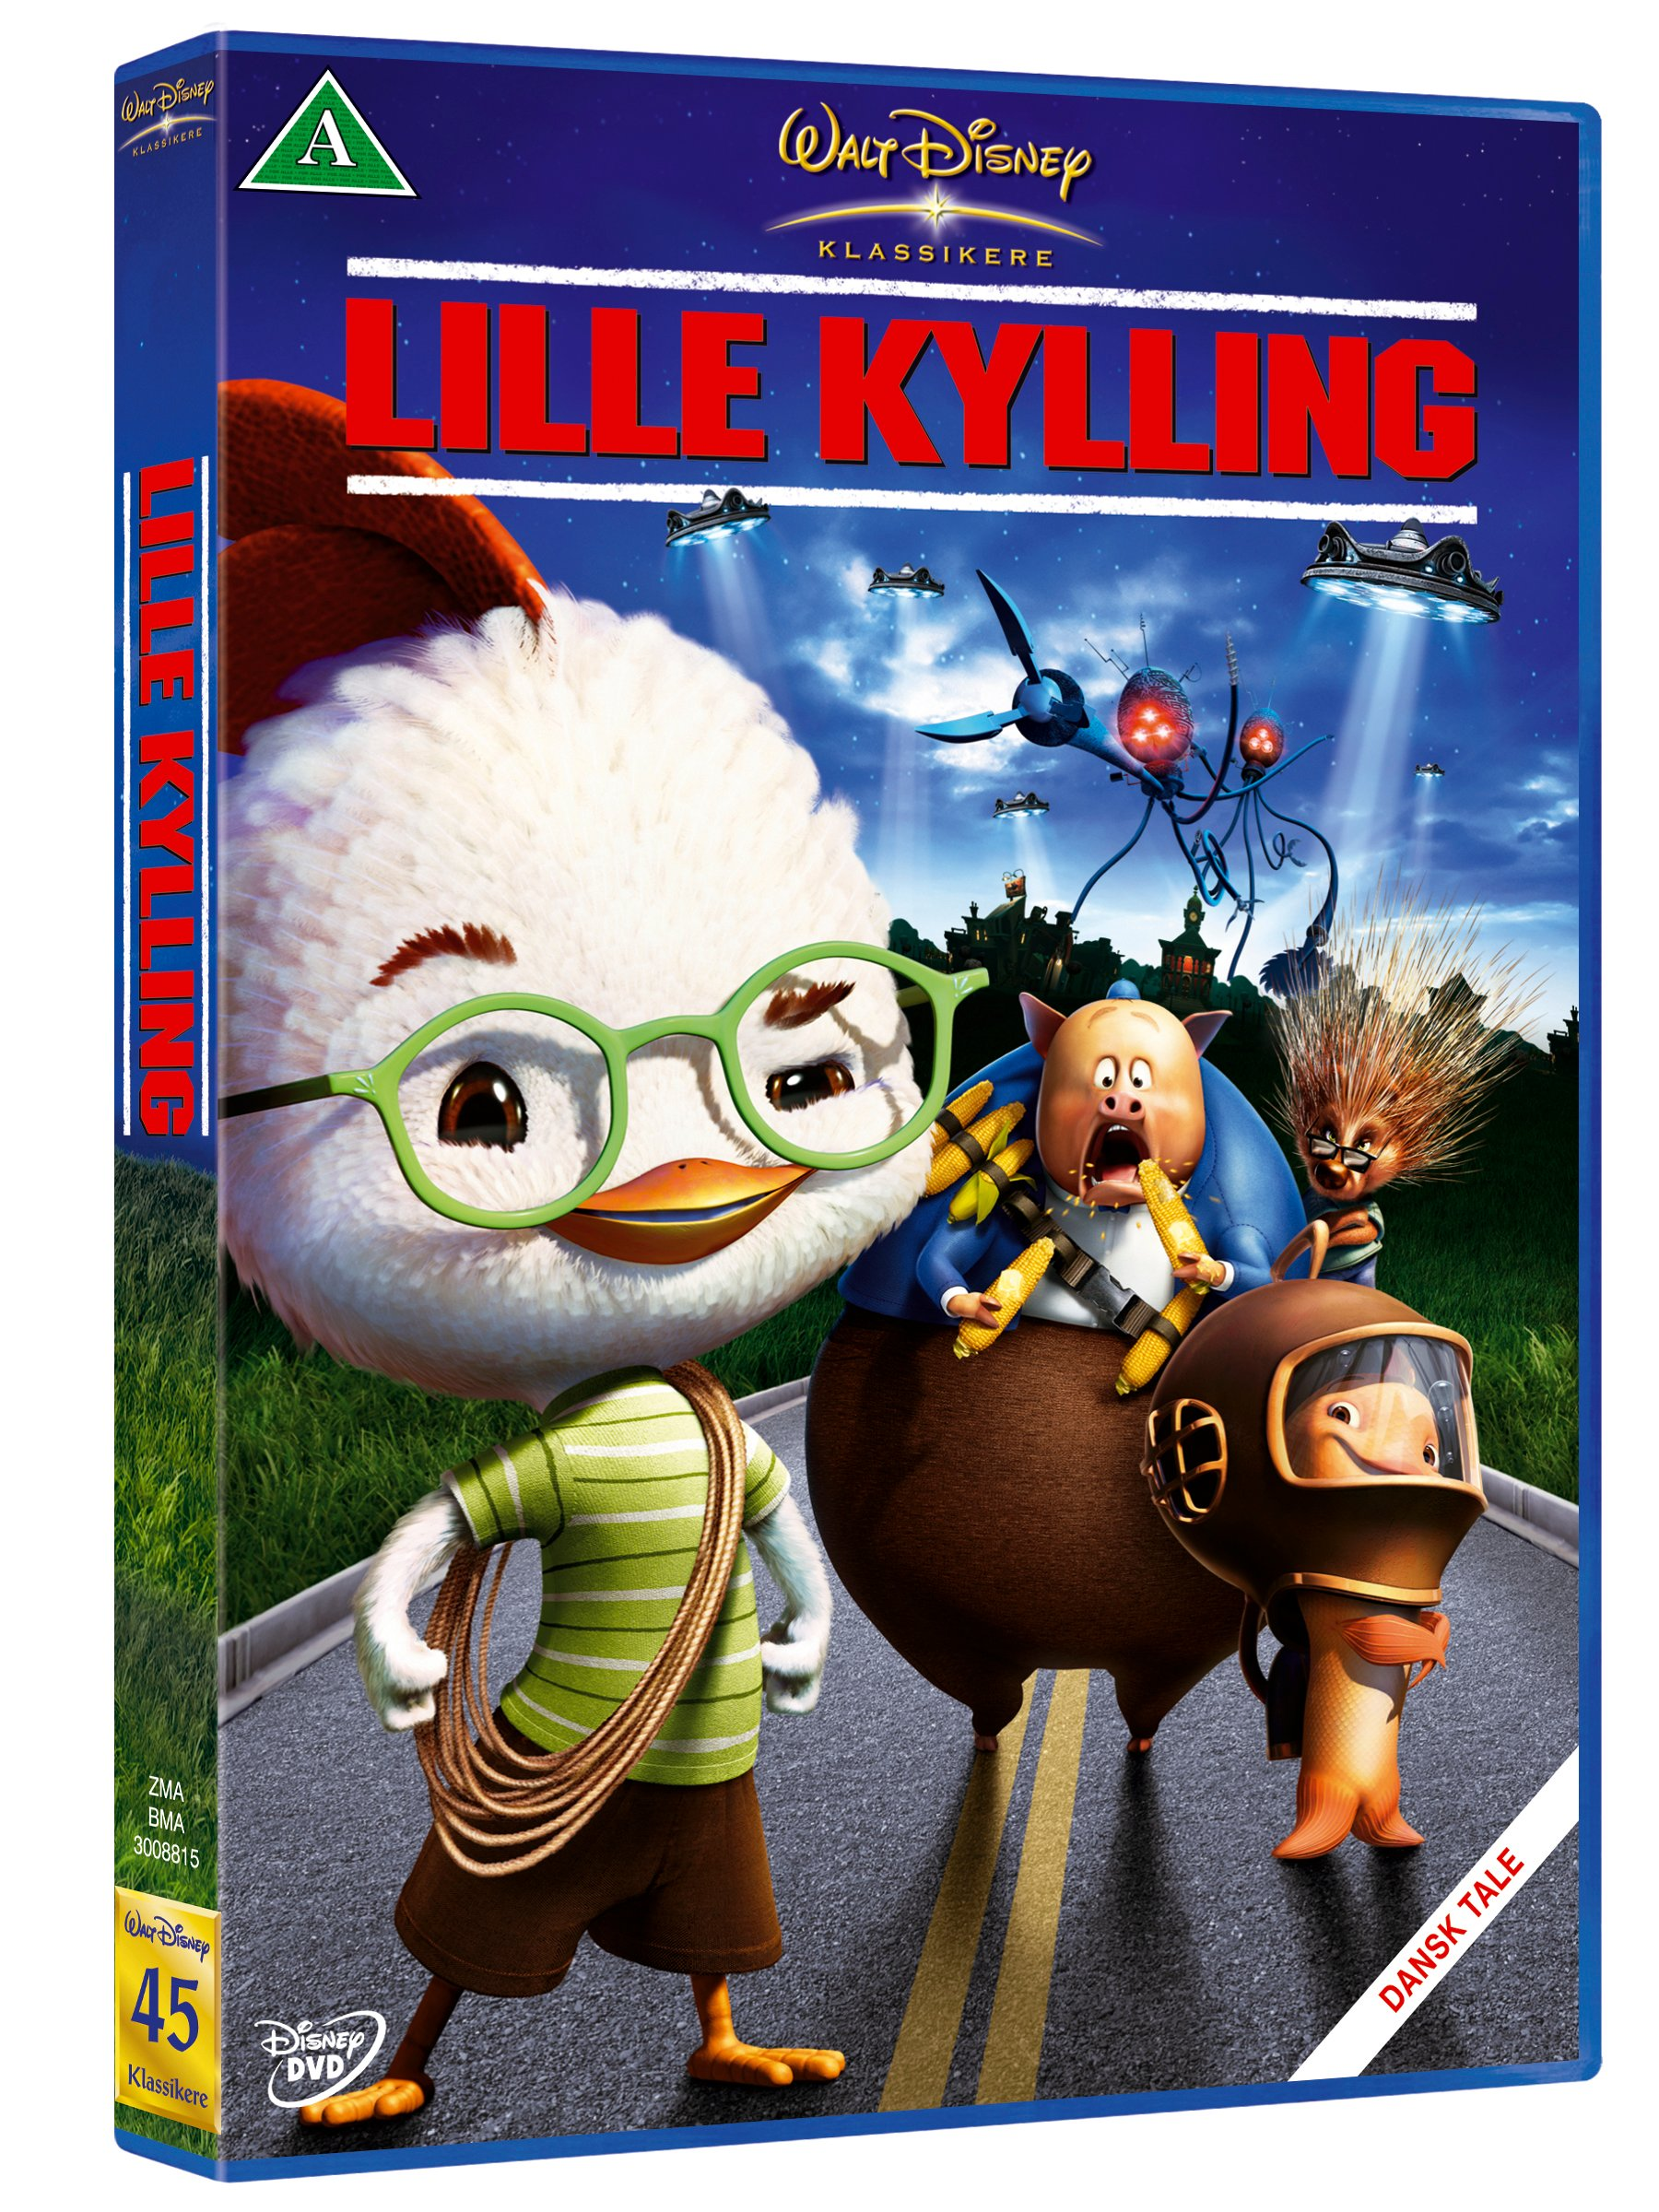 Lille kylling Disney classic #45